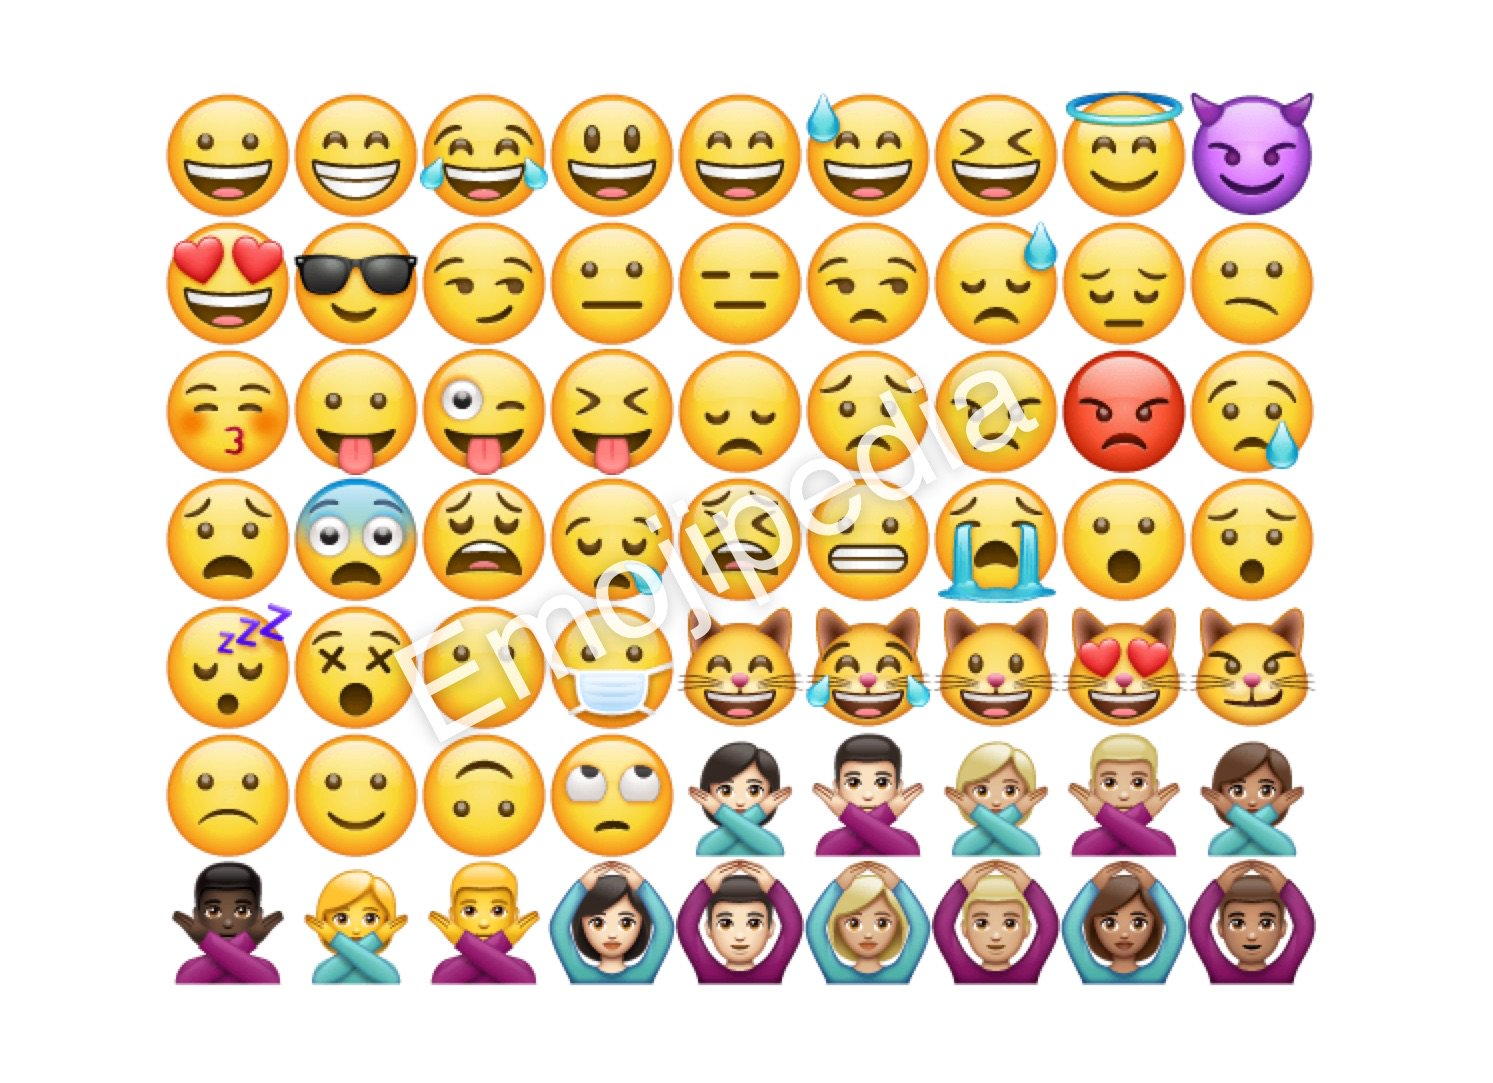 WhatsApp unveils new emoji